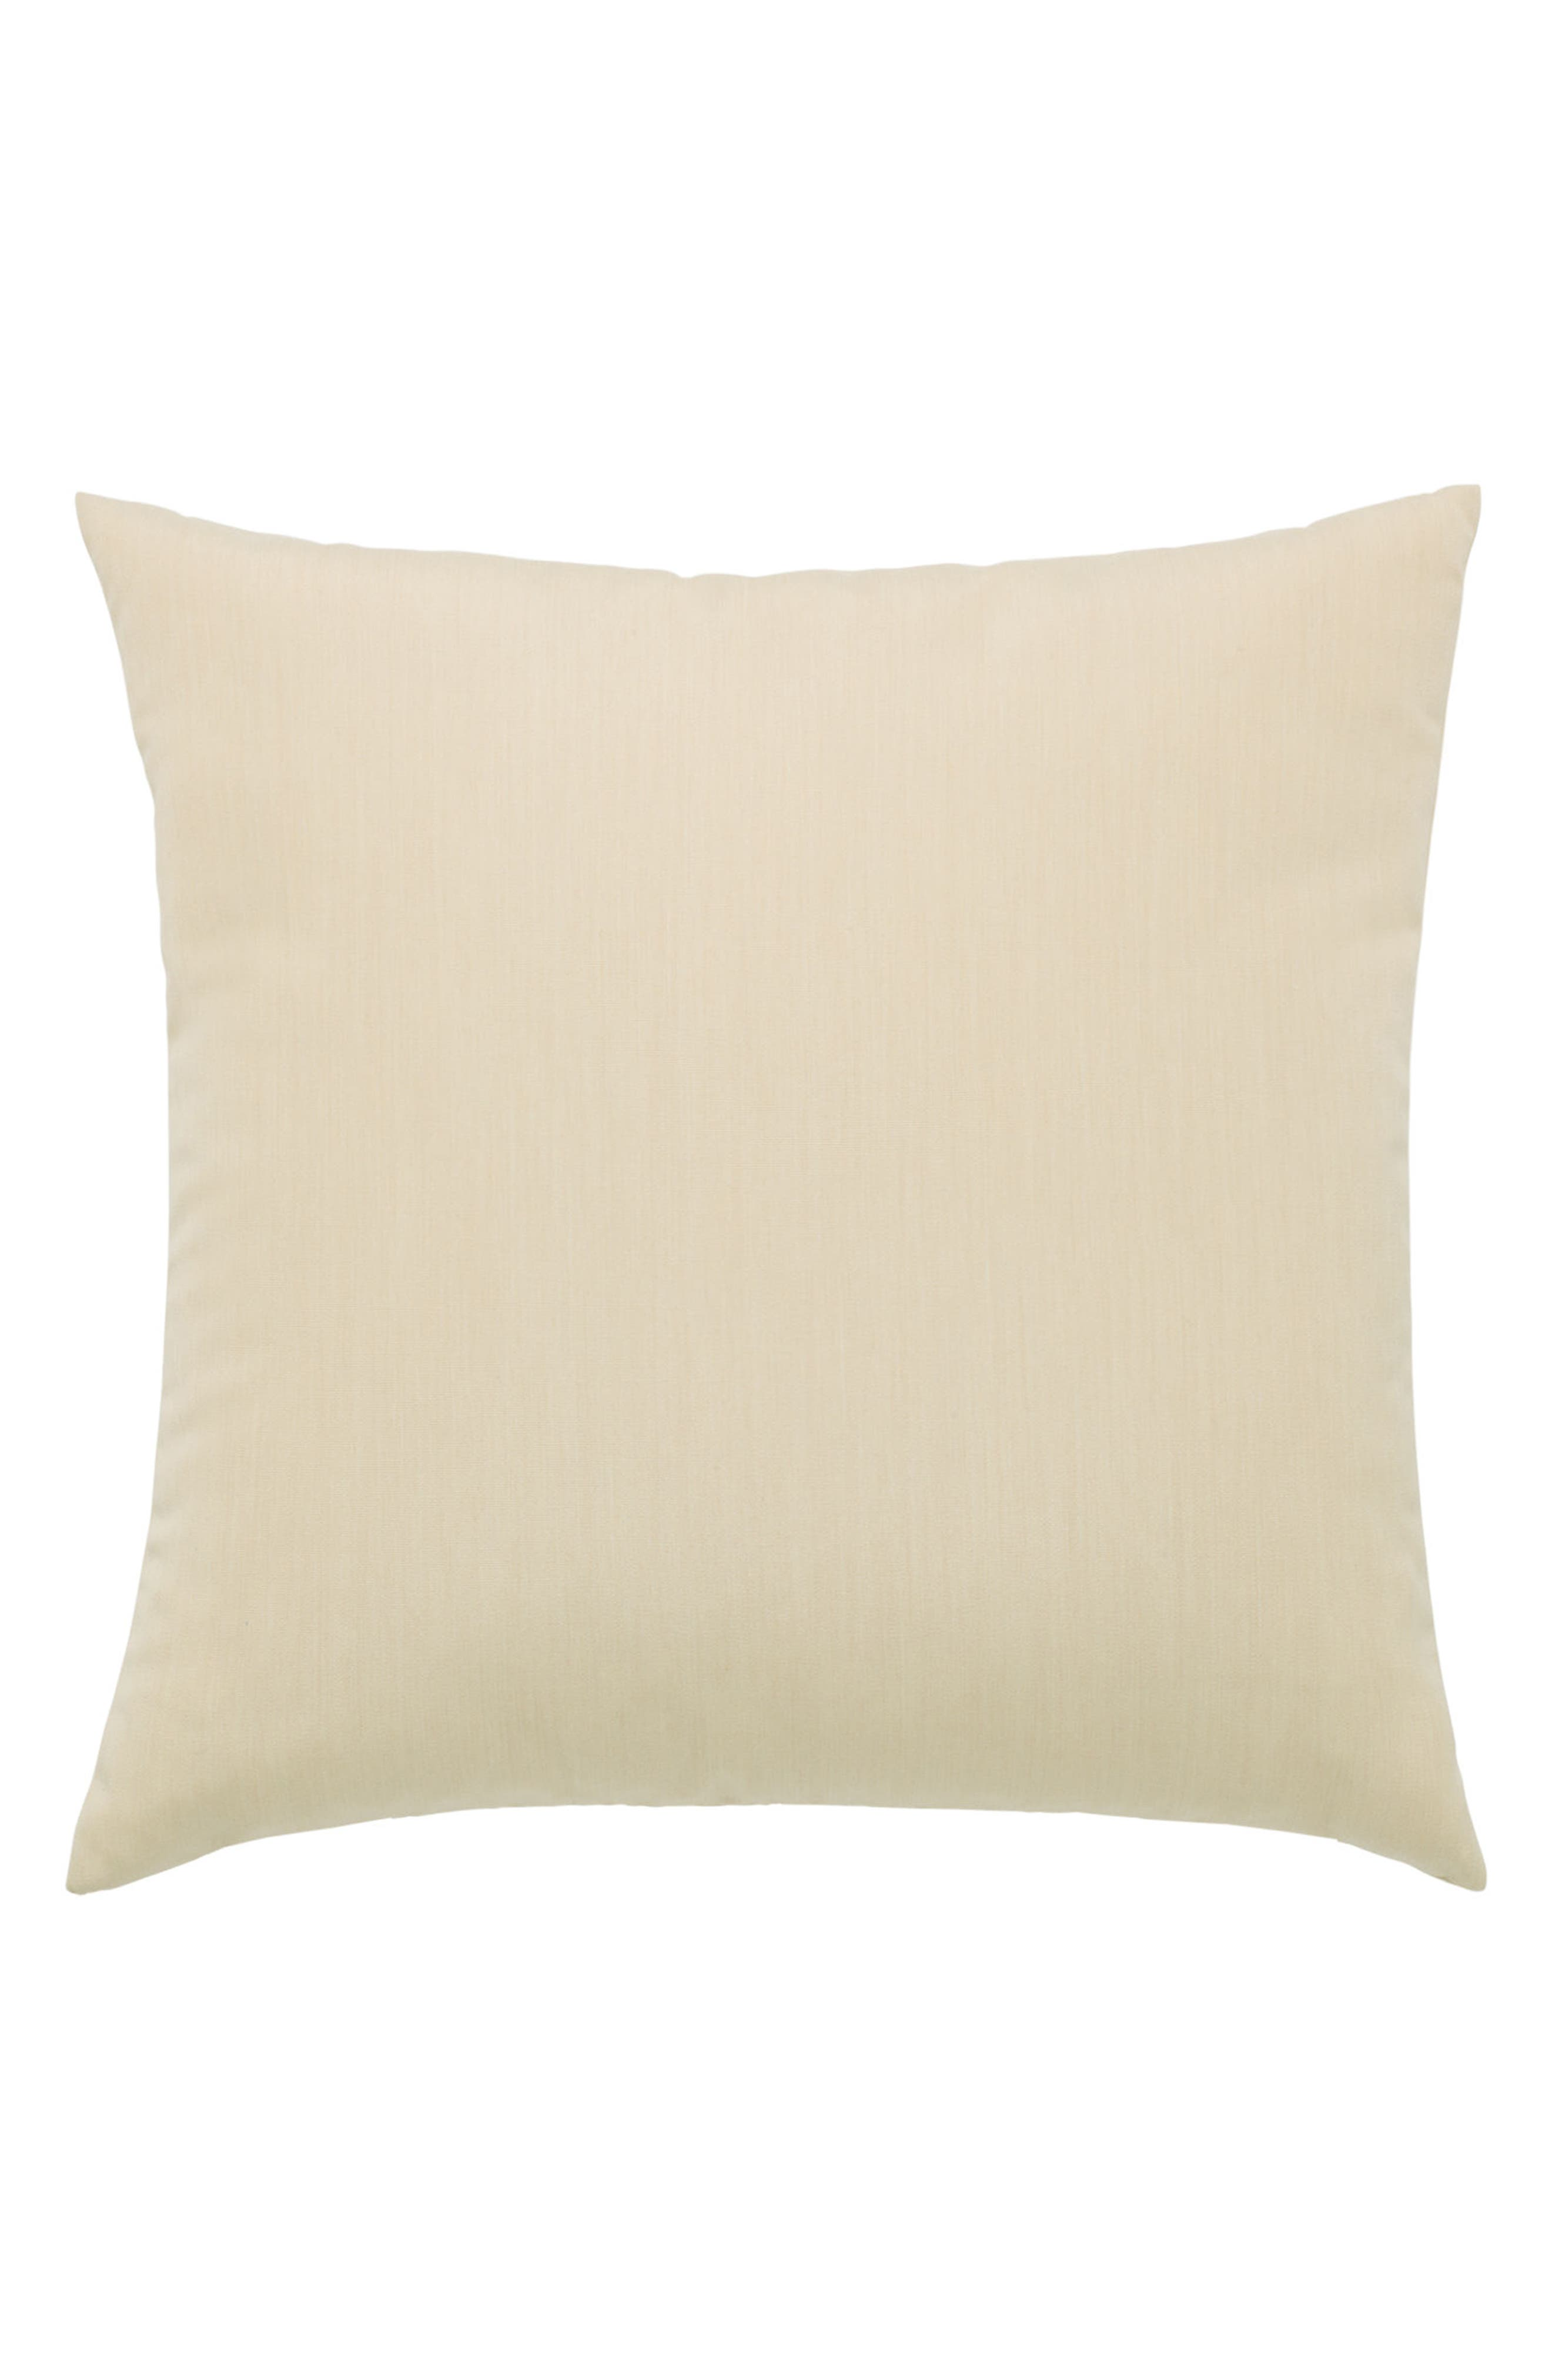 Coral Sun Indoor/Outdoor Accent Pillow,                             Alternate thumbnail 2, color,                             ORANGE